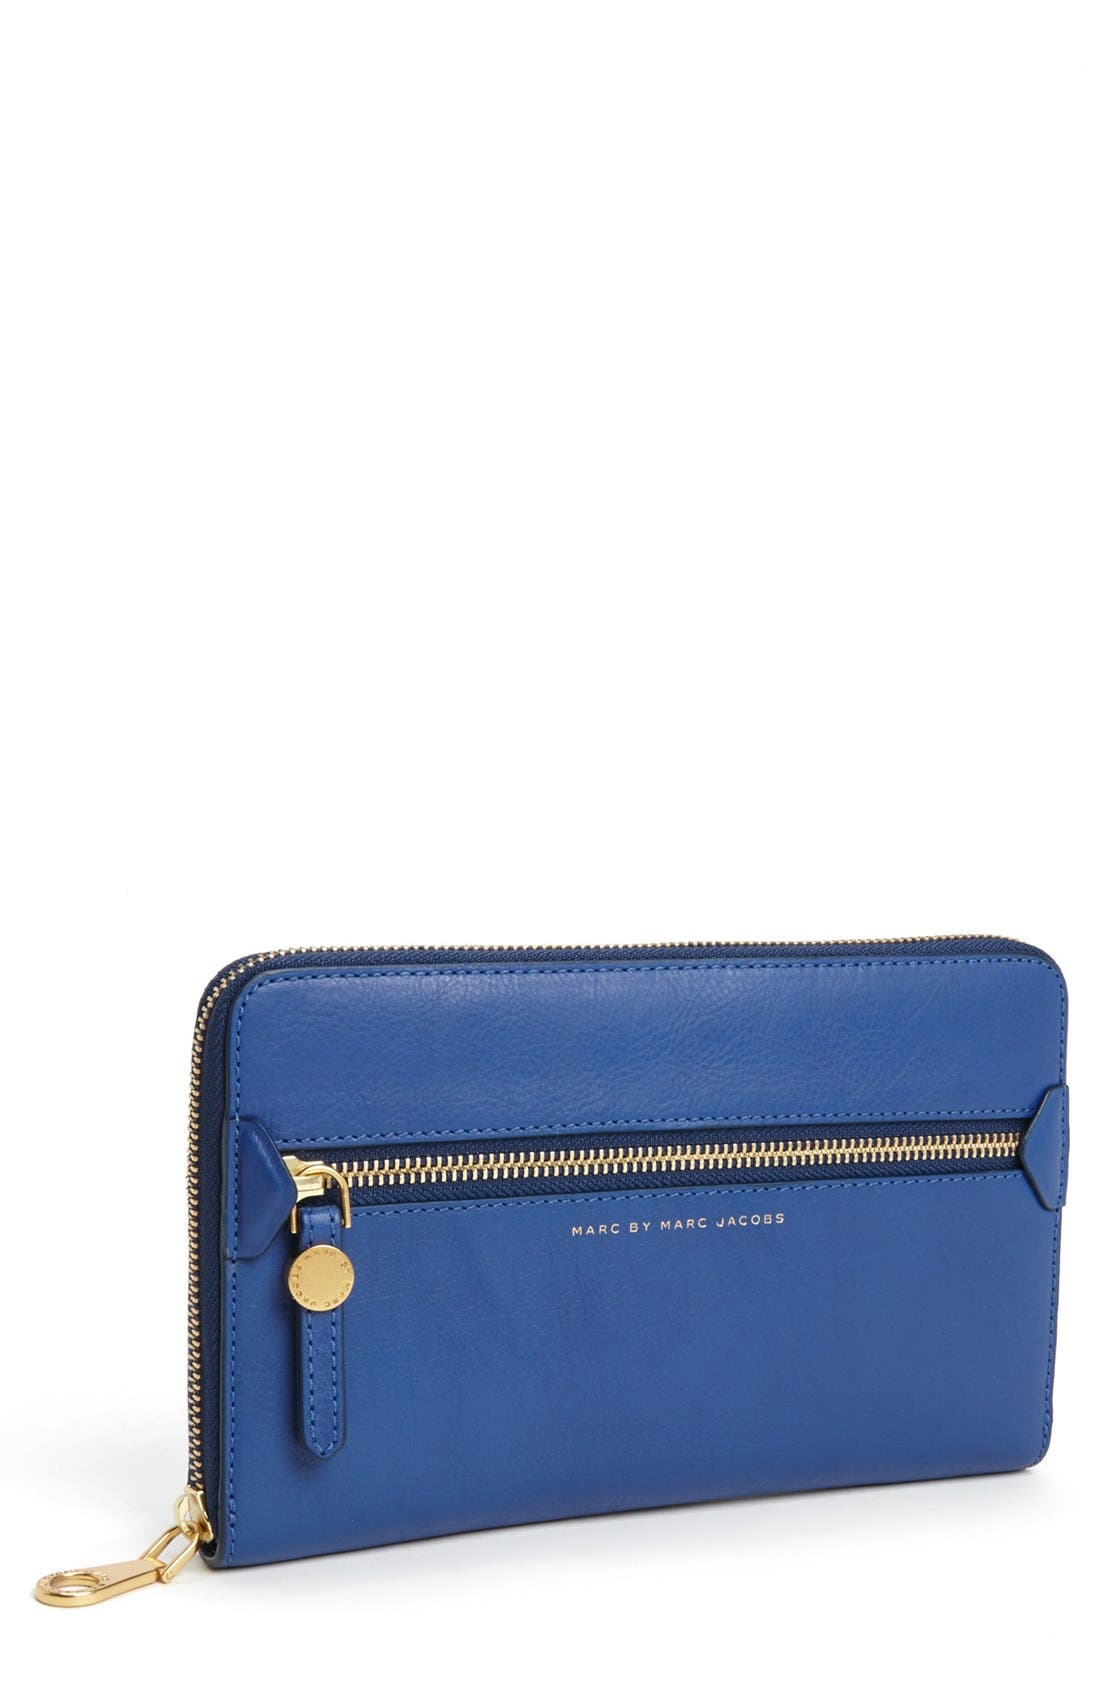 Alternate Image 1 Selected - MARC BY MARC JACOBS 'Globetrotter' Travel Wallet